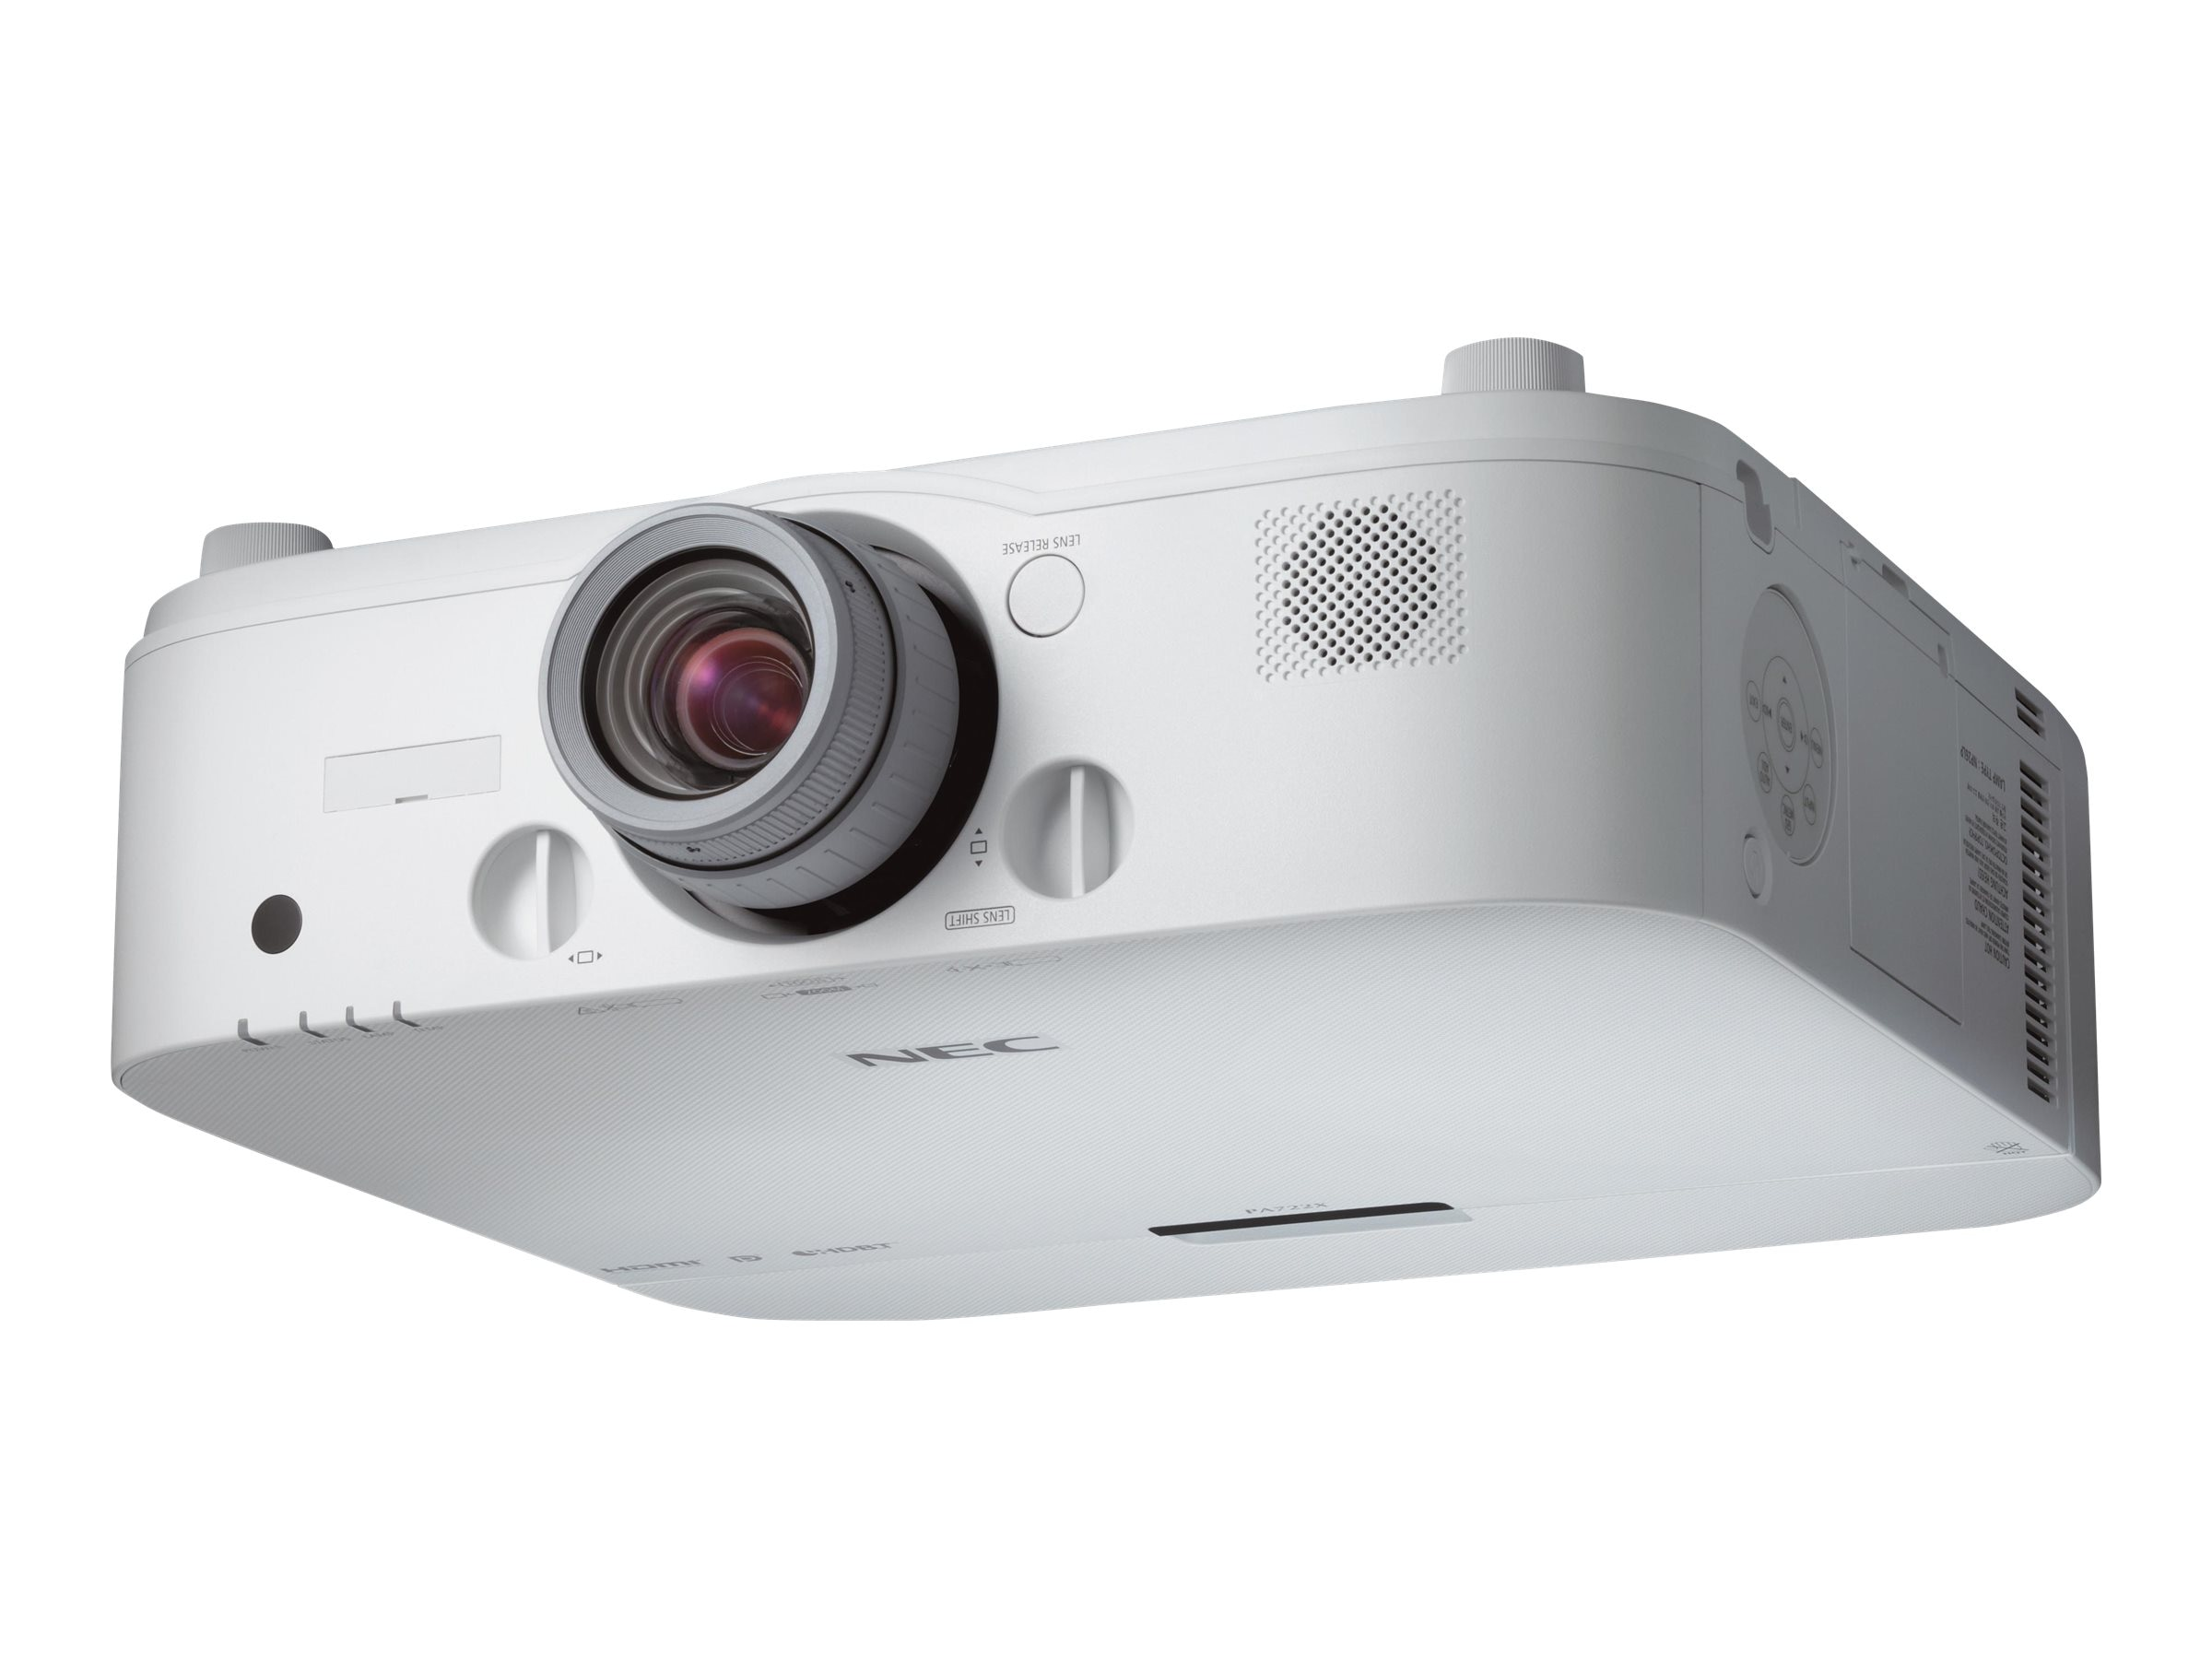 NEC PA722X XGA LCD Projector, 7200 Lumens, White with 1.5-3.0:1 Zoom Lens